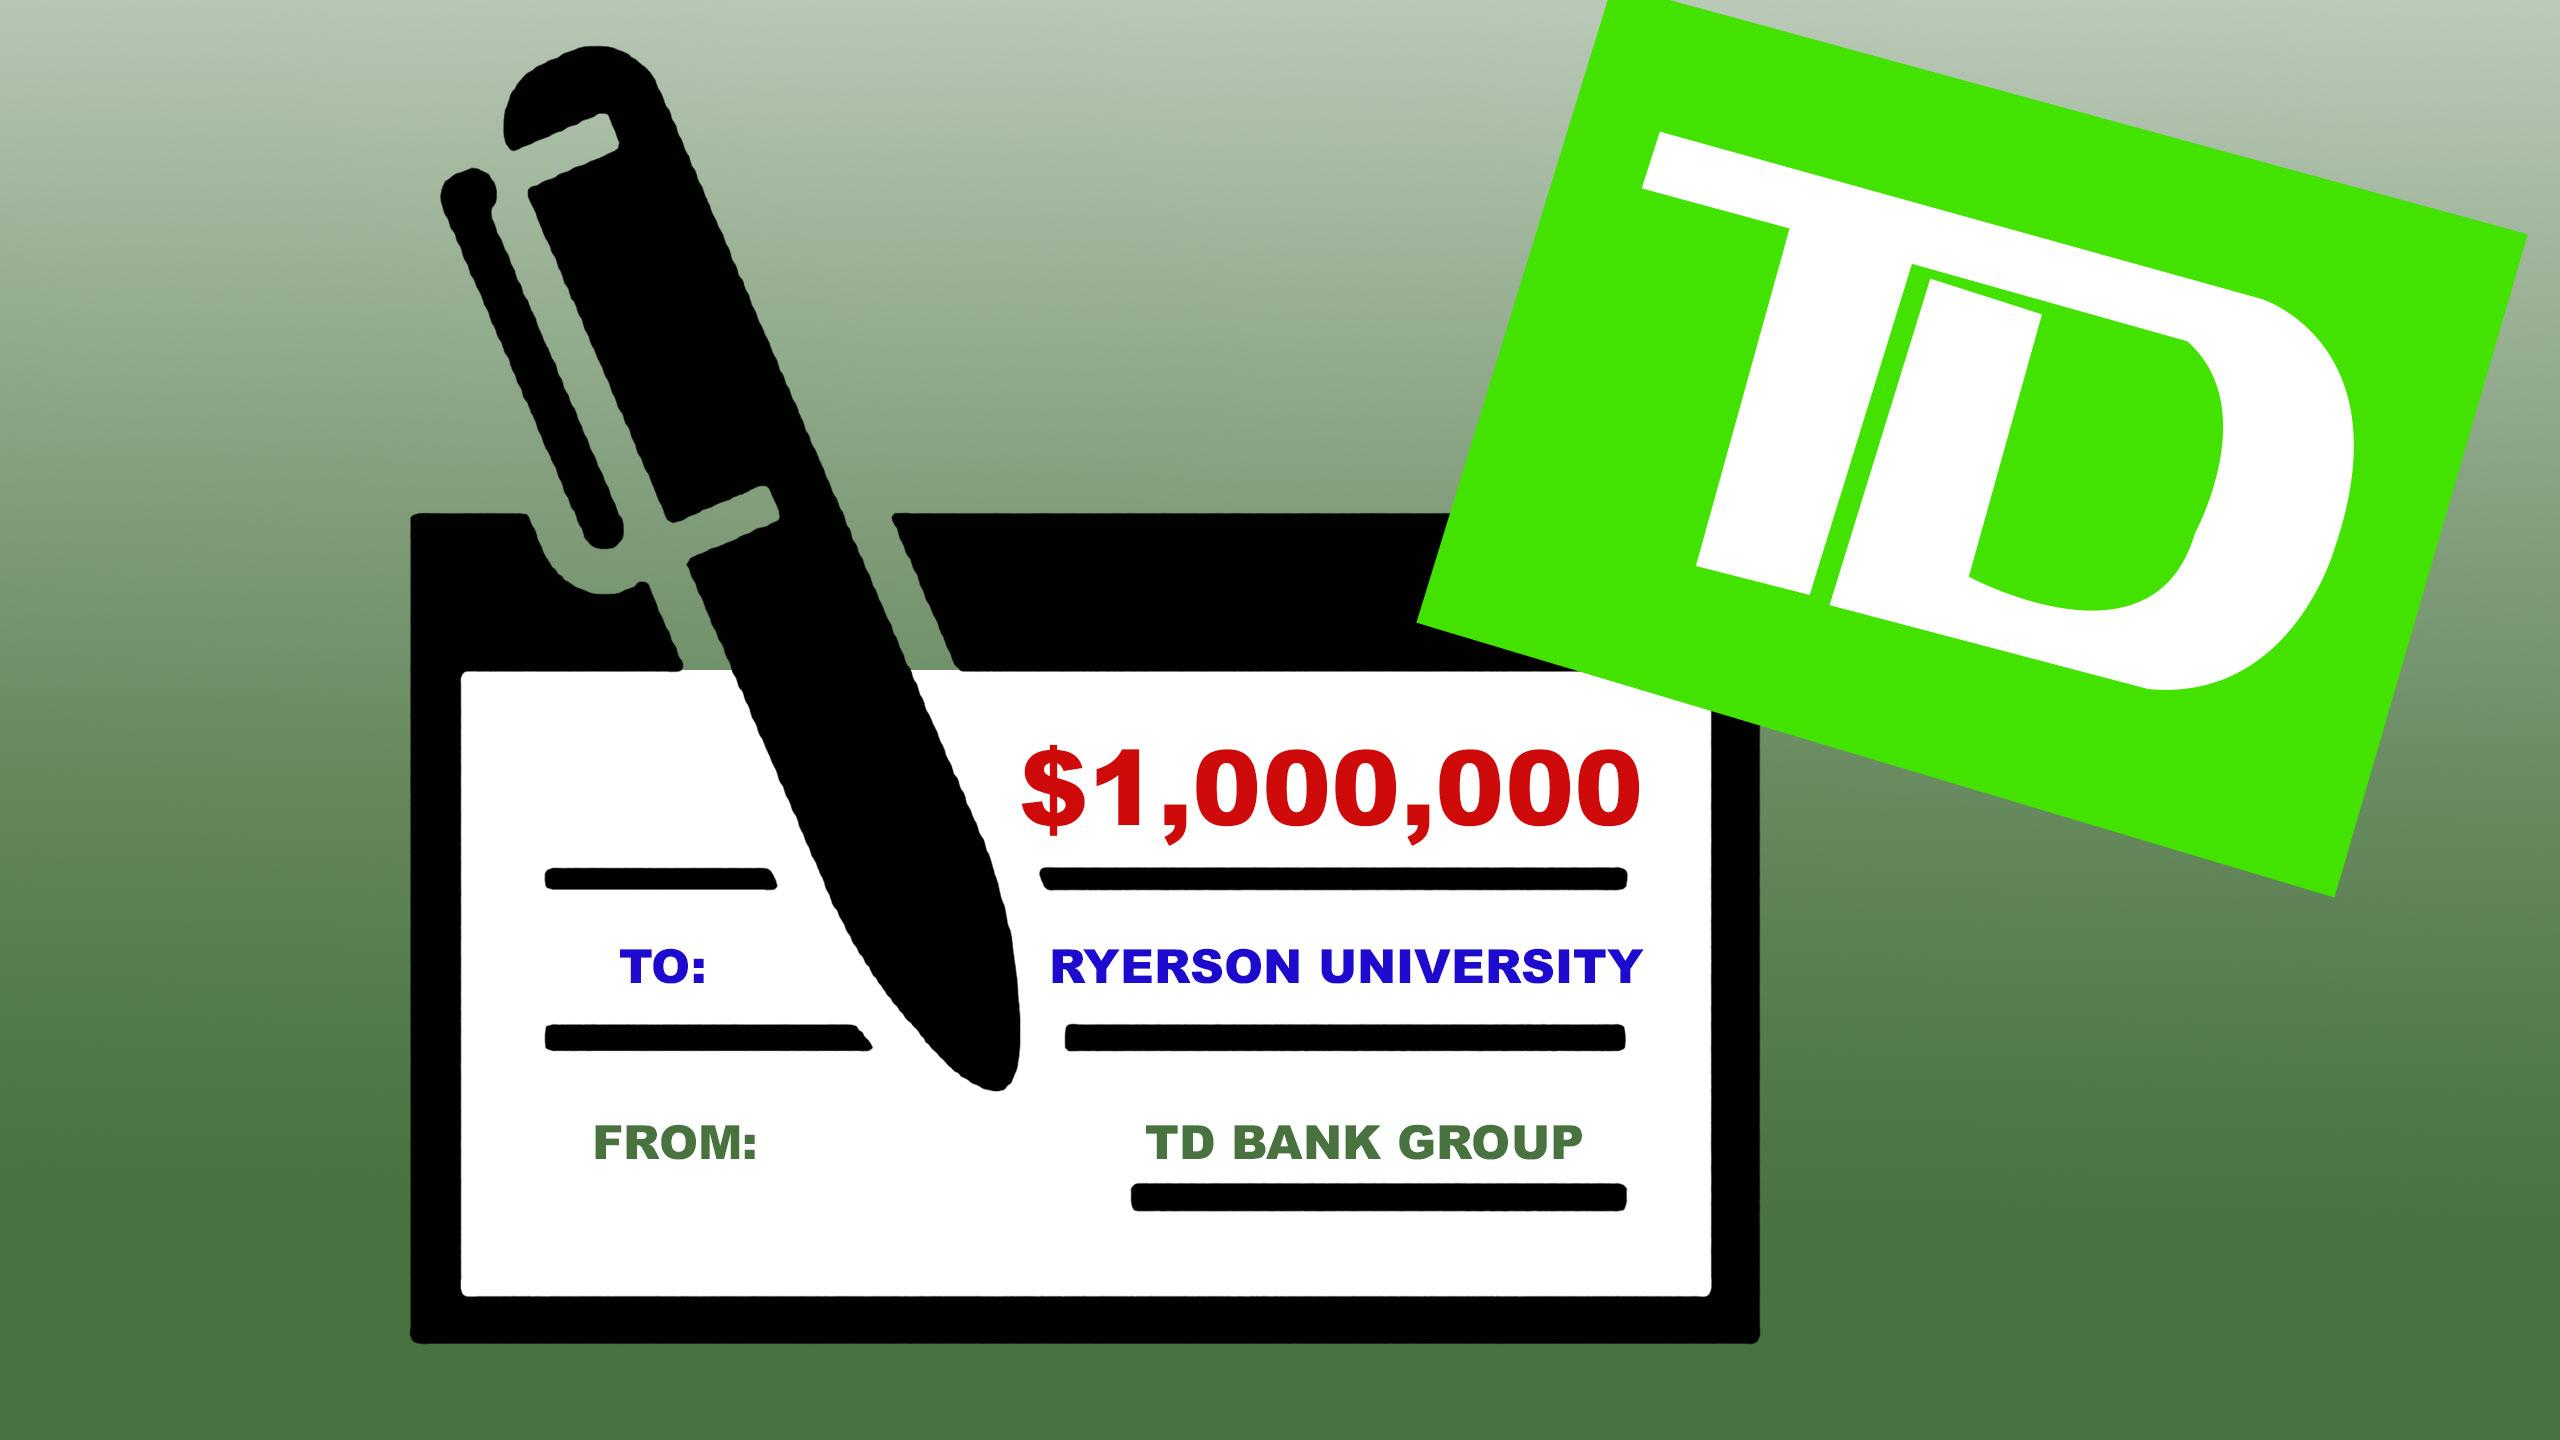 TD Bank 'spans the gap' with $1M donation to support Ryerson